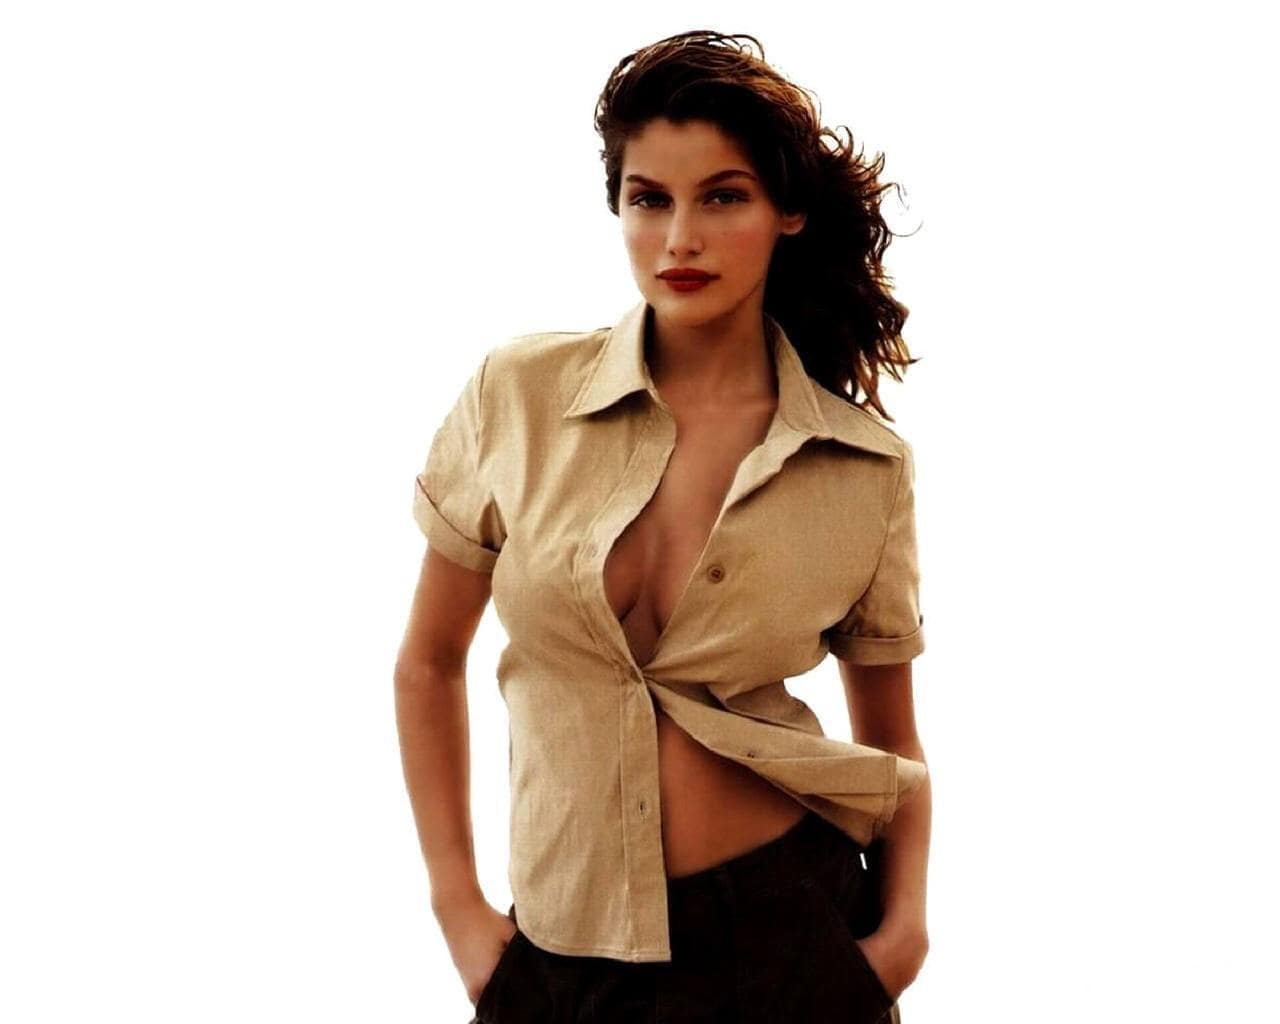 Laetitia Casta Wide wallpapers